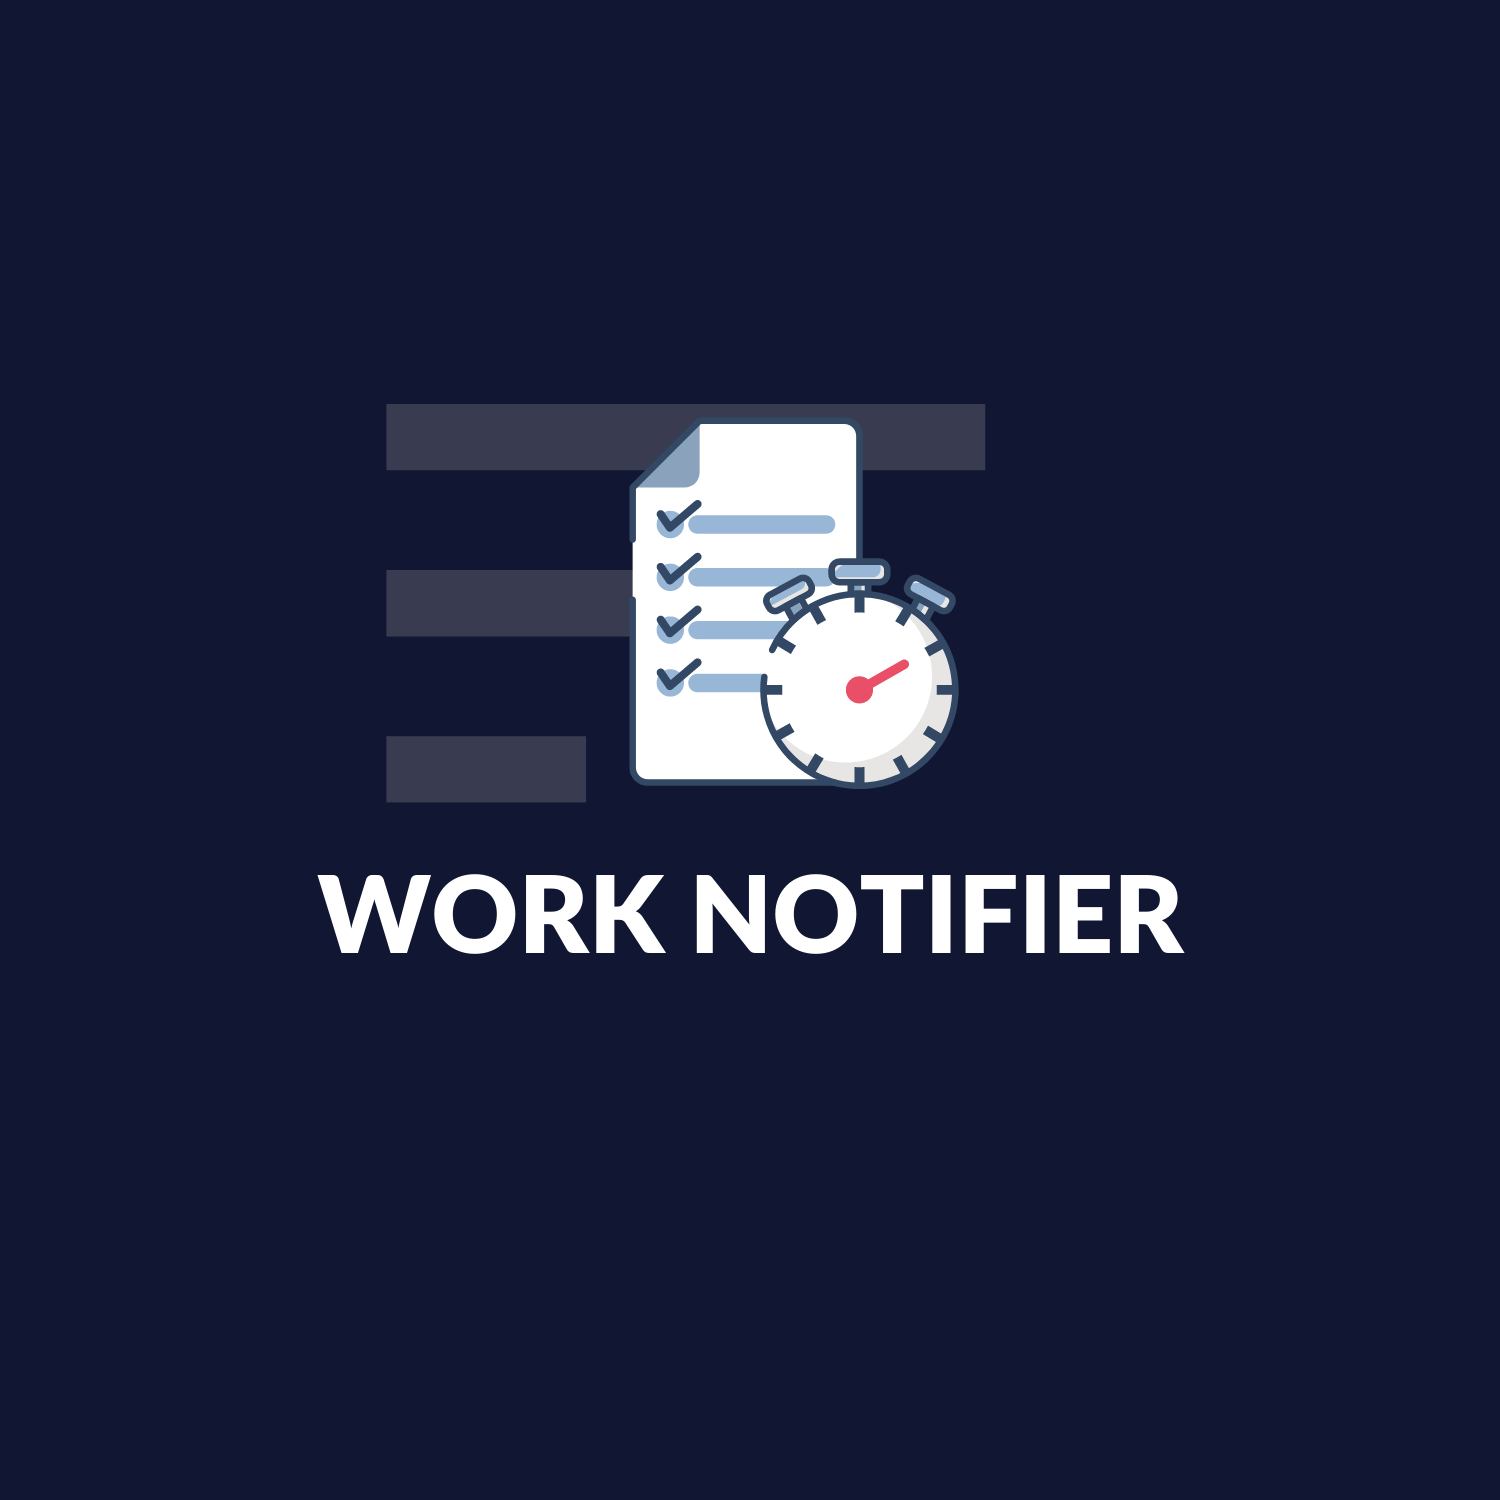 Work Notifier